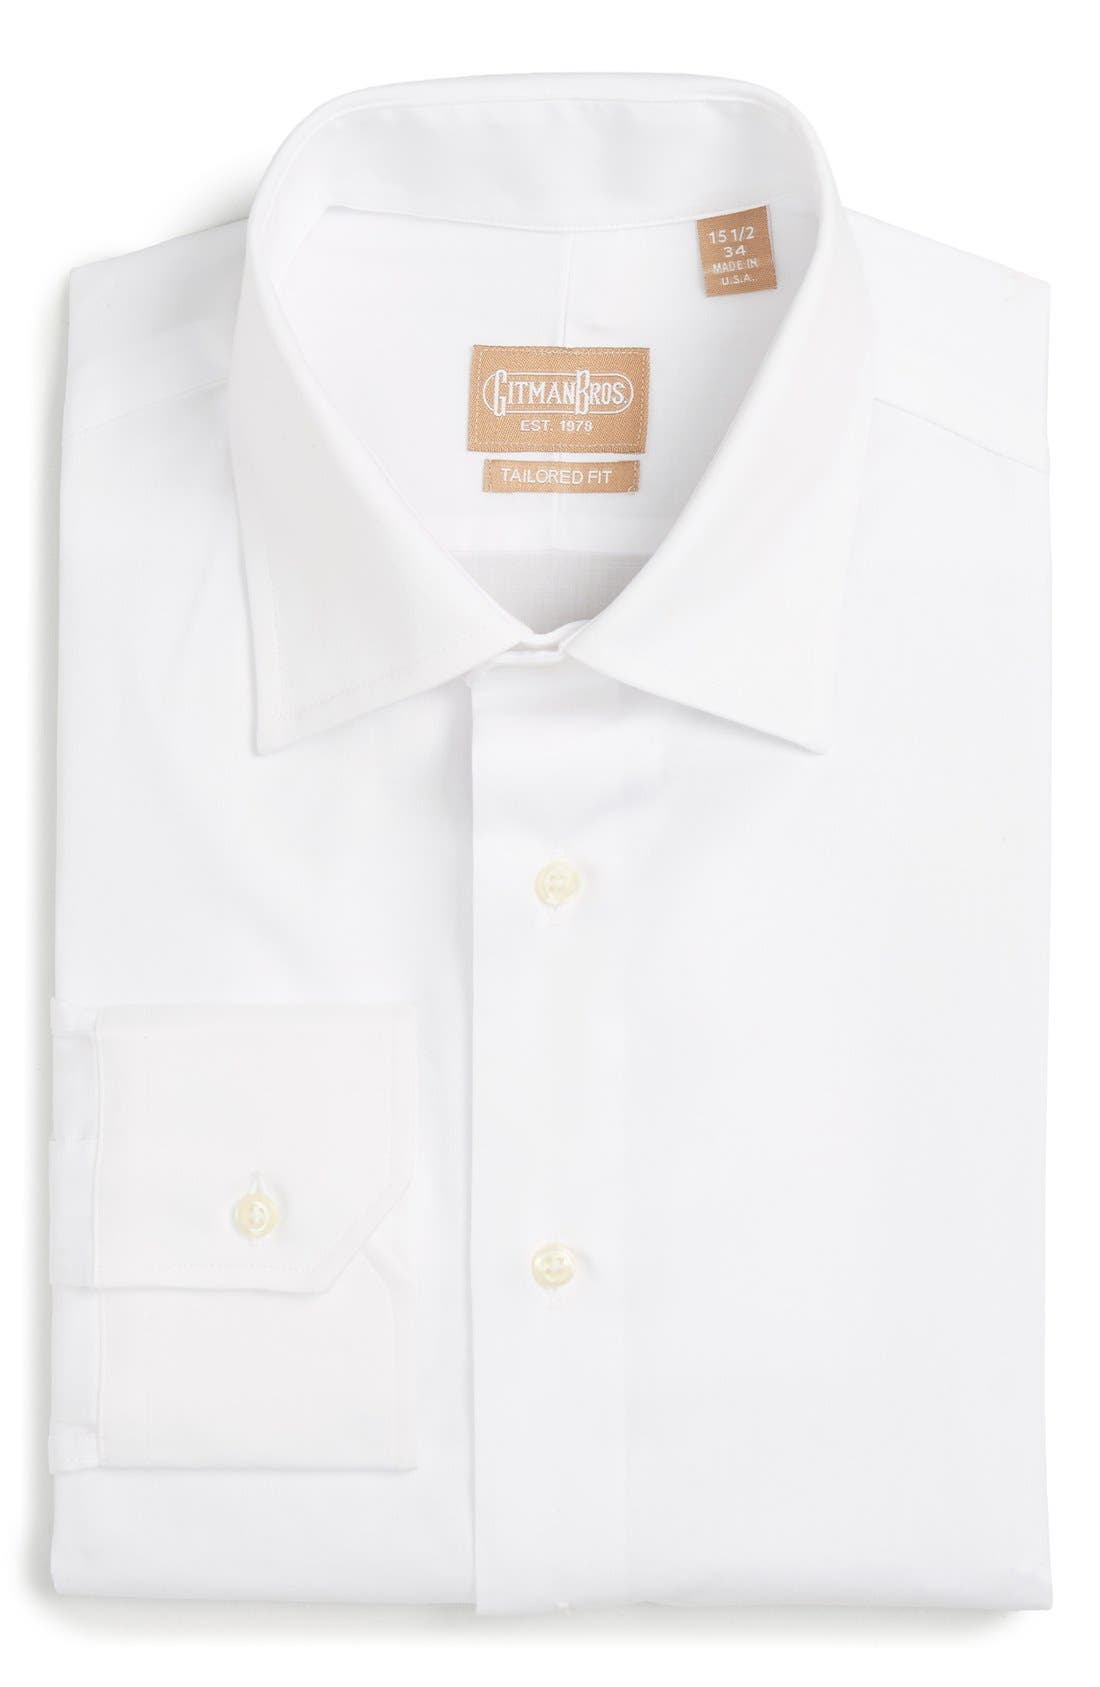 Tailored Fit Solid Dress Shirt,                         Main,                         color, White